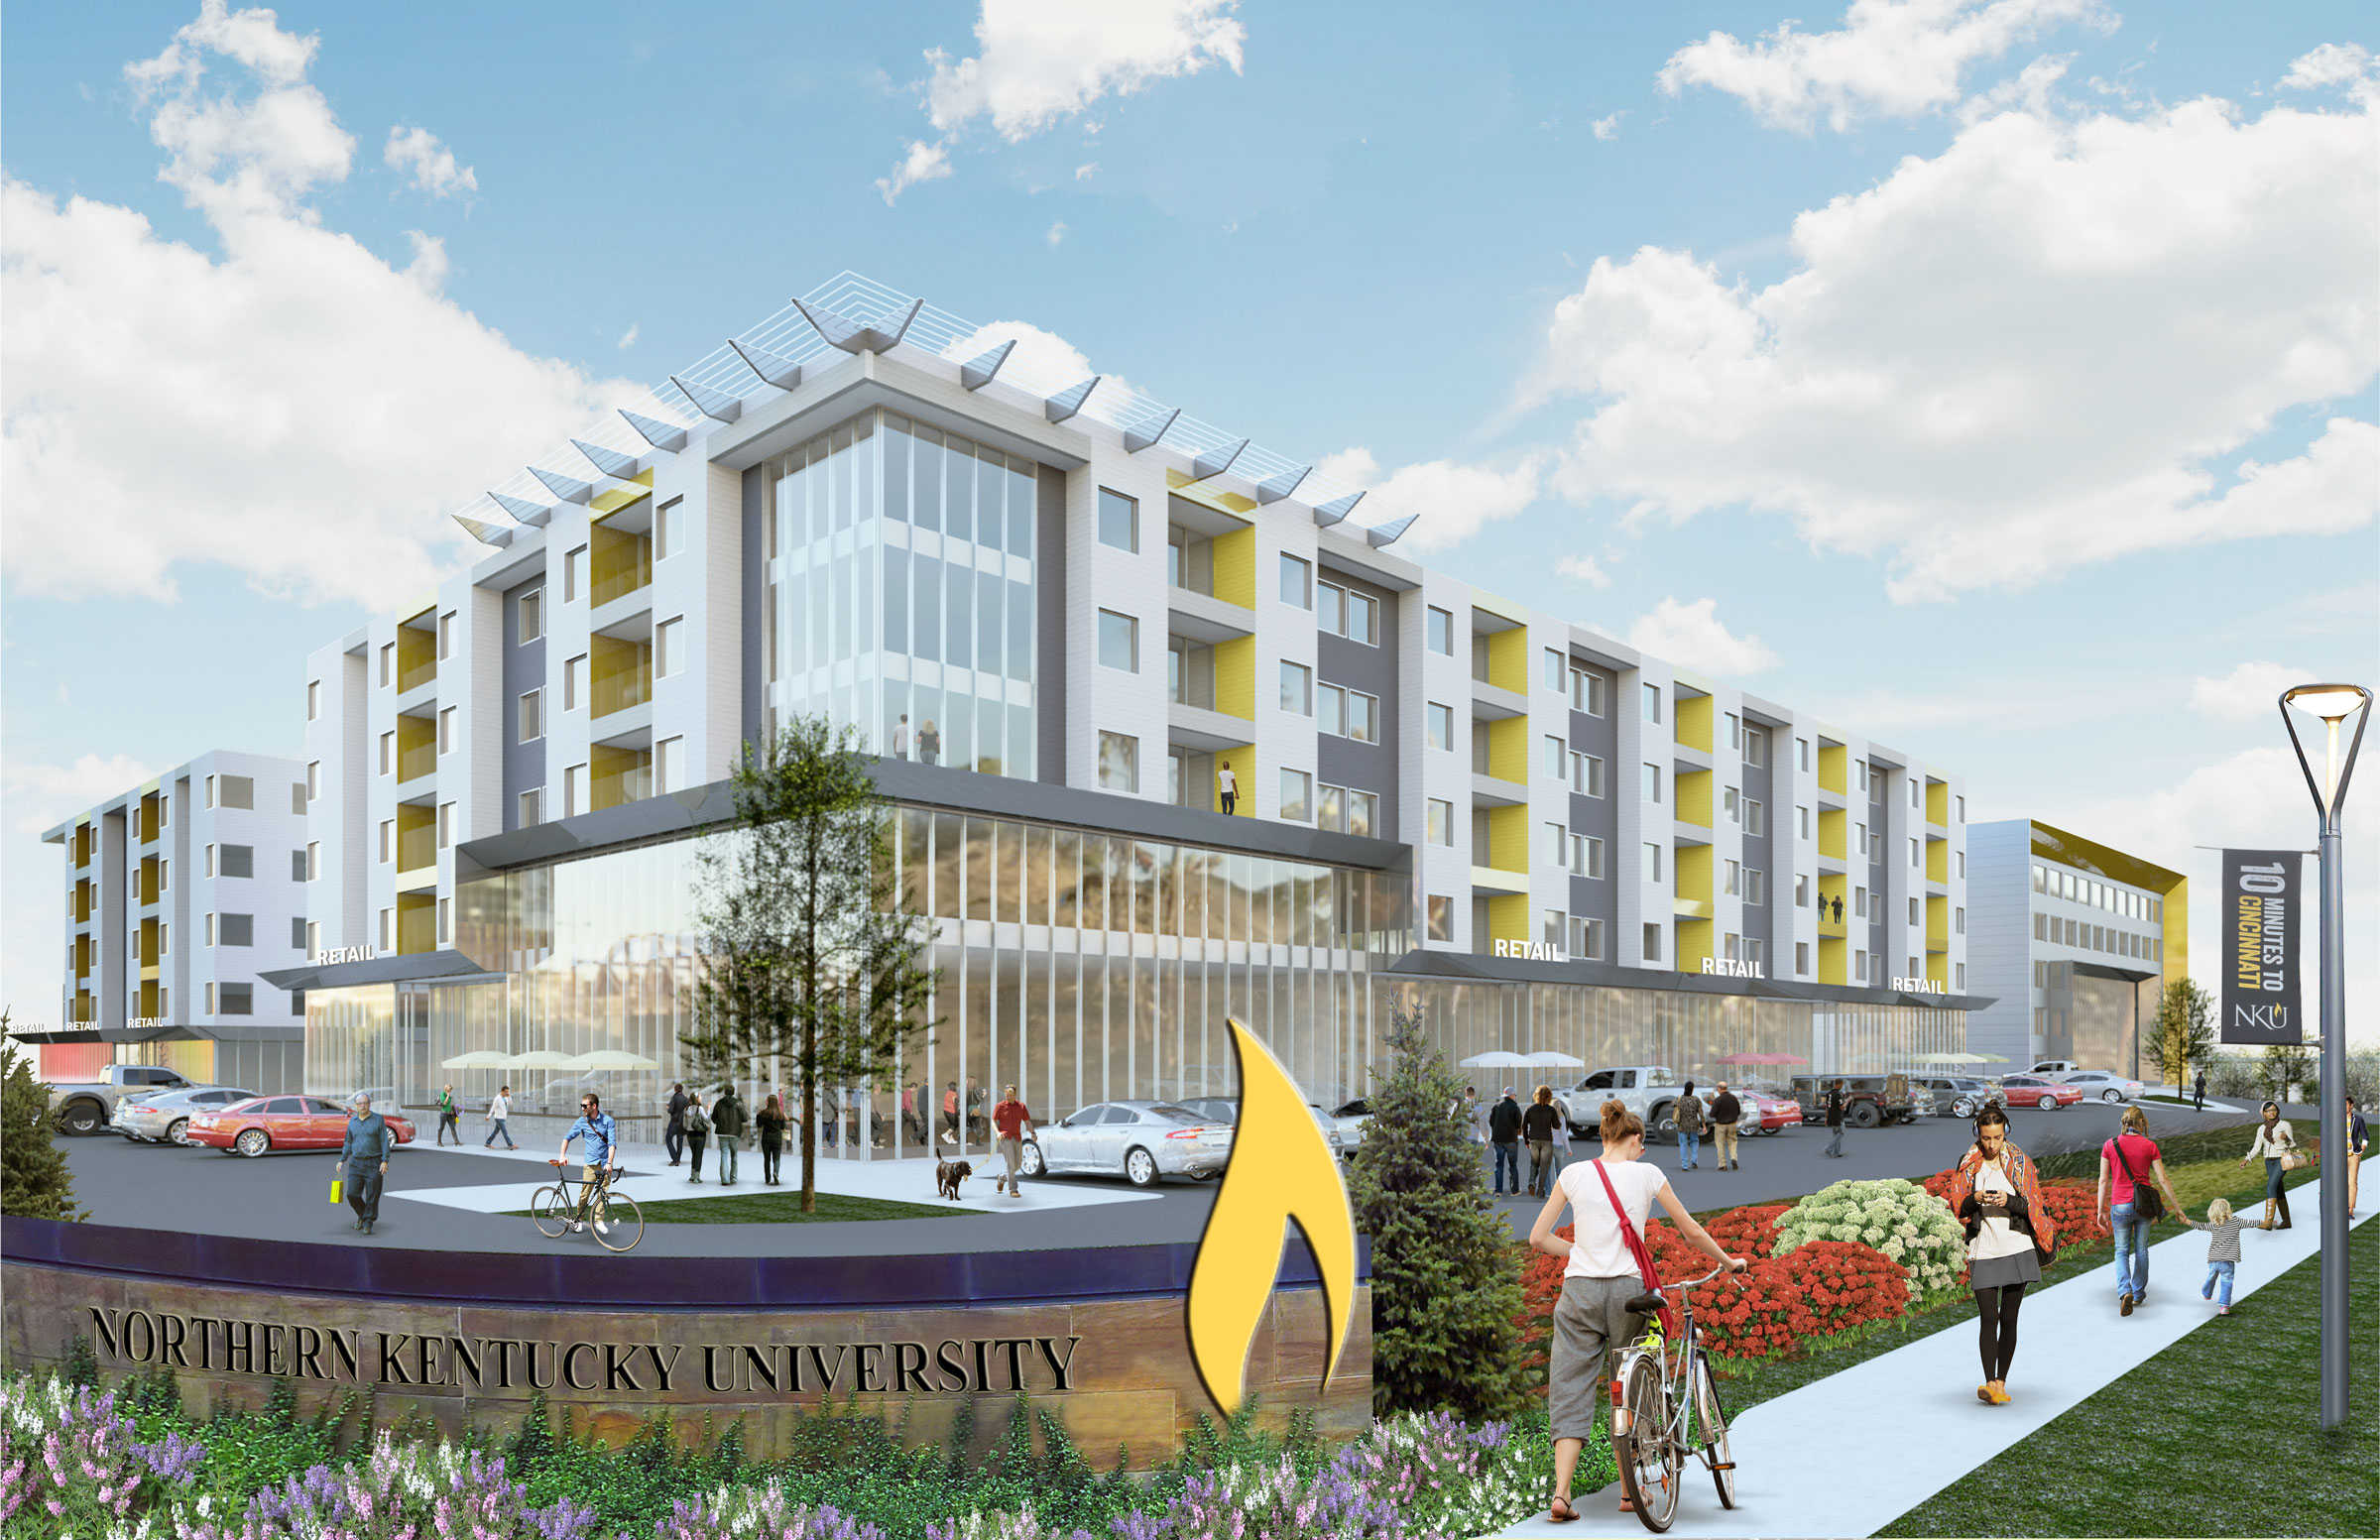 A 12-acre mixed-use project that will include additional on-campus housing is in the beginning phases of planning. The plan is still far-off, but the university hopes that it will connect the campus with the surrounding community.